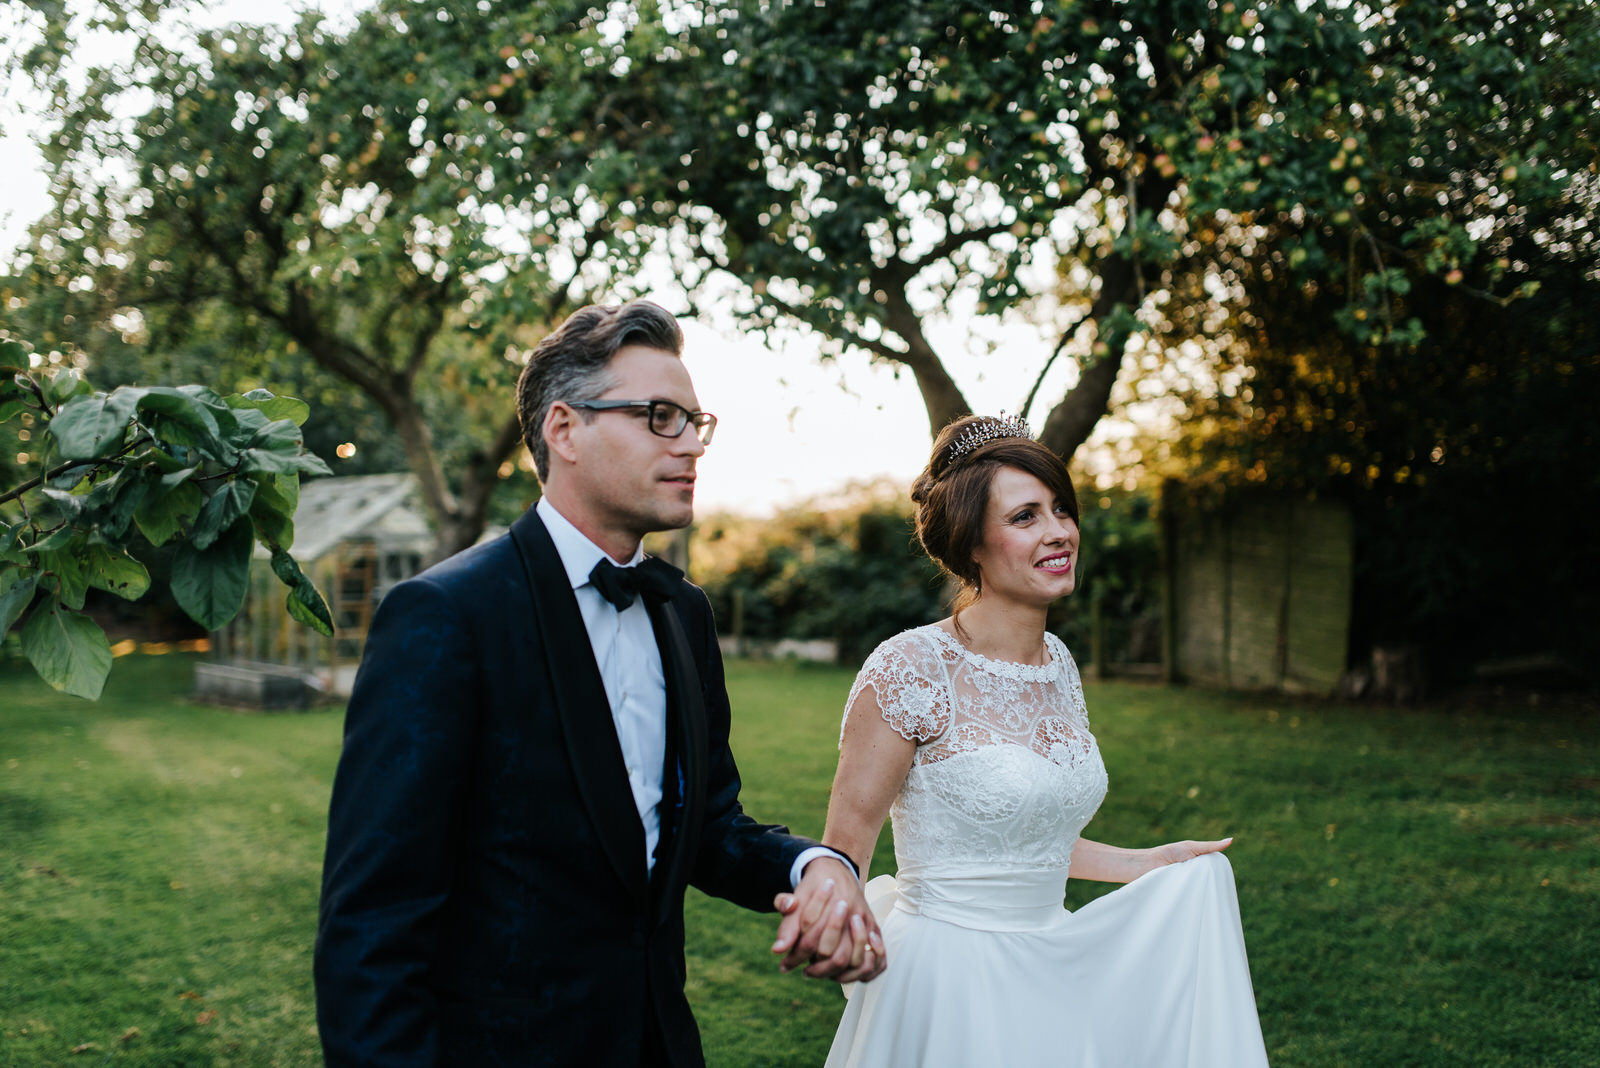 Bride and Groom walk towards guests in sun-drenched garden